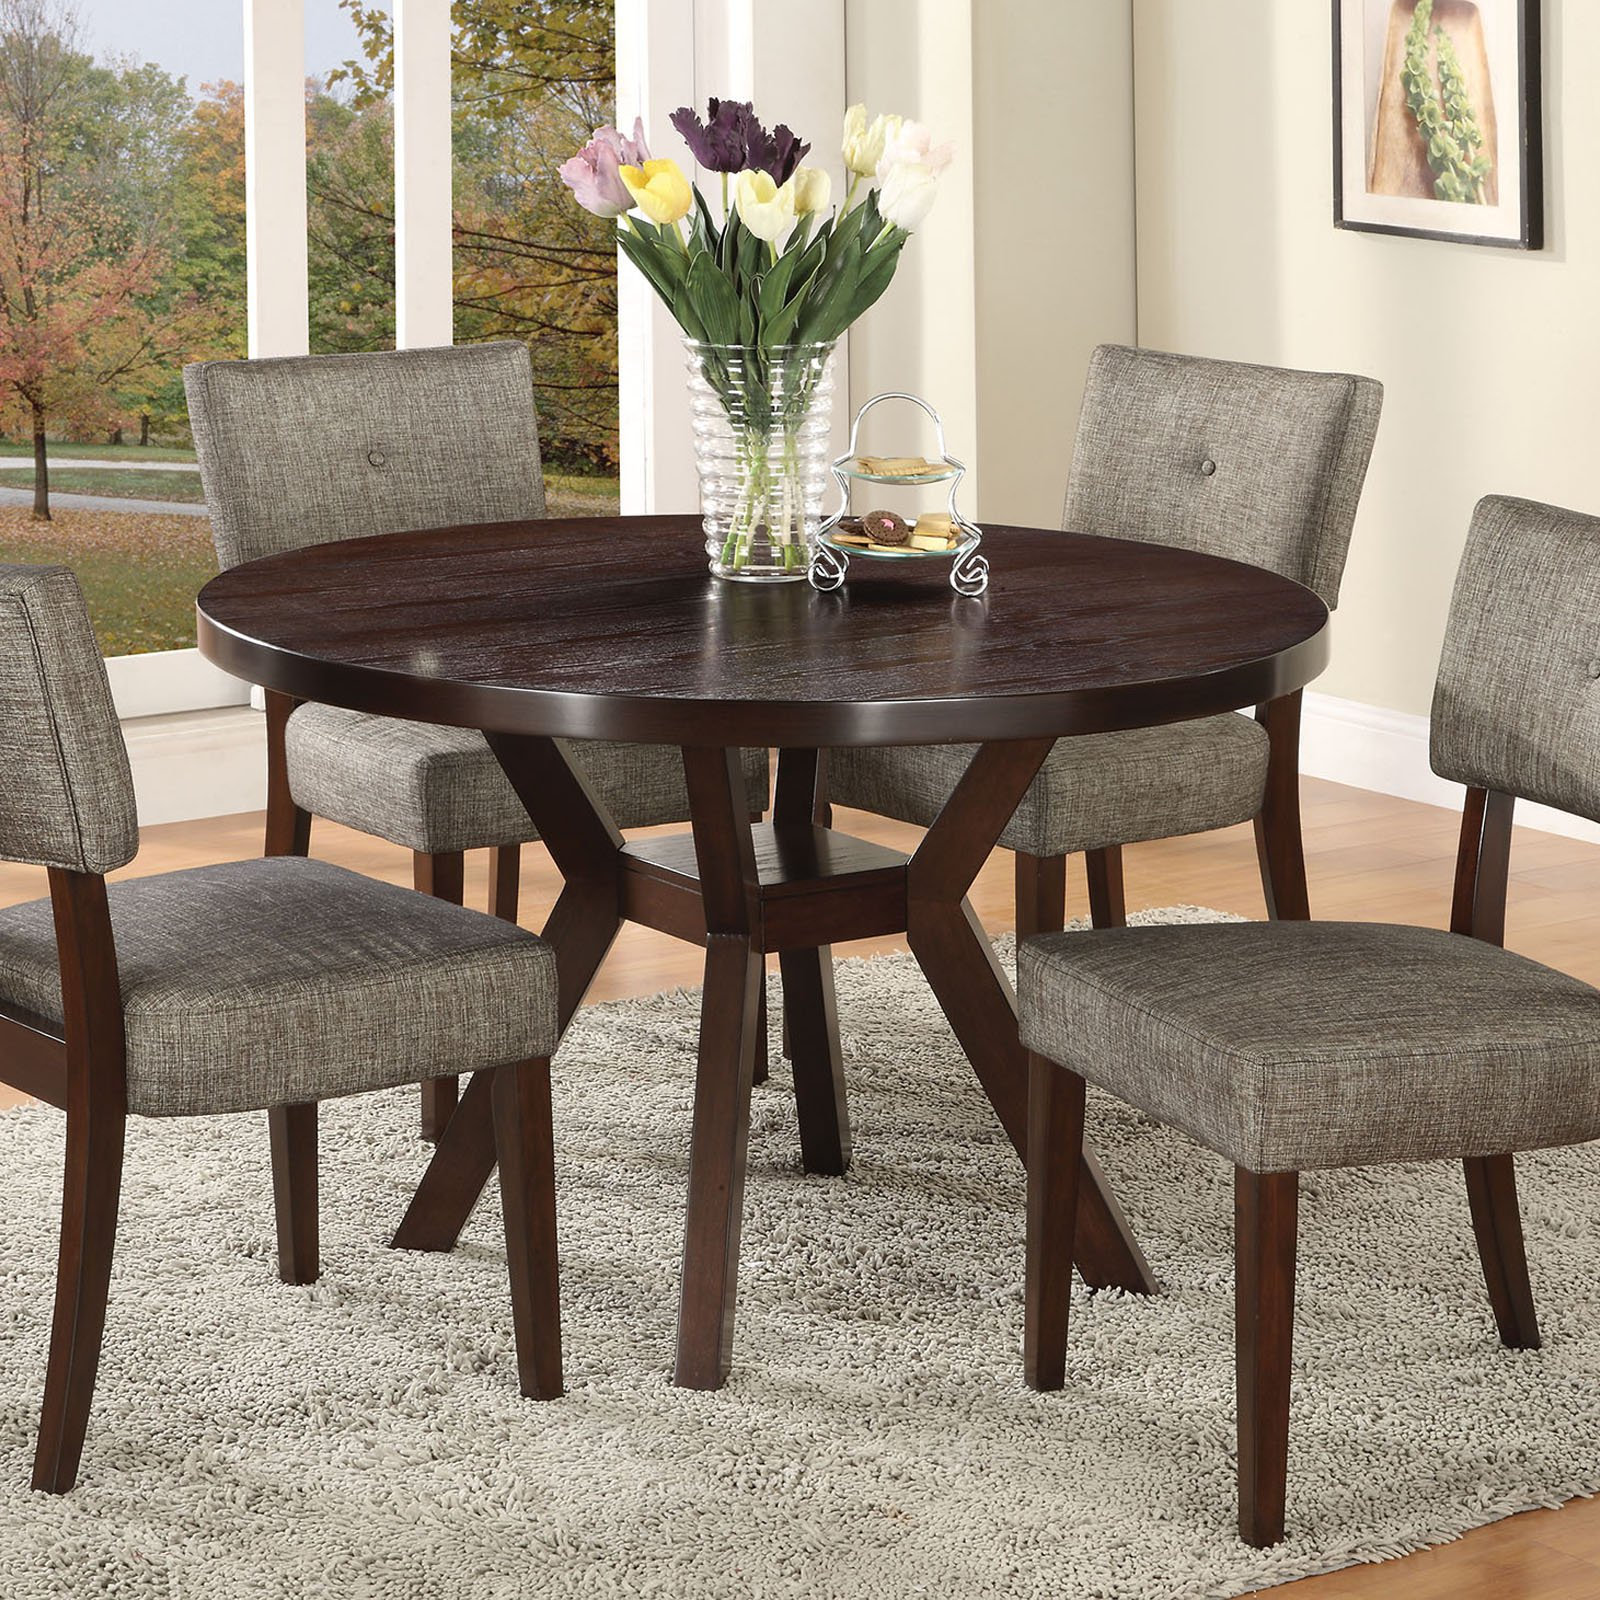 ACME Drake Dining Table, Espresso by Acme Furniture, Inc